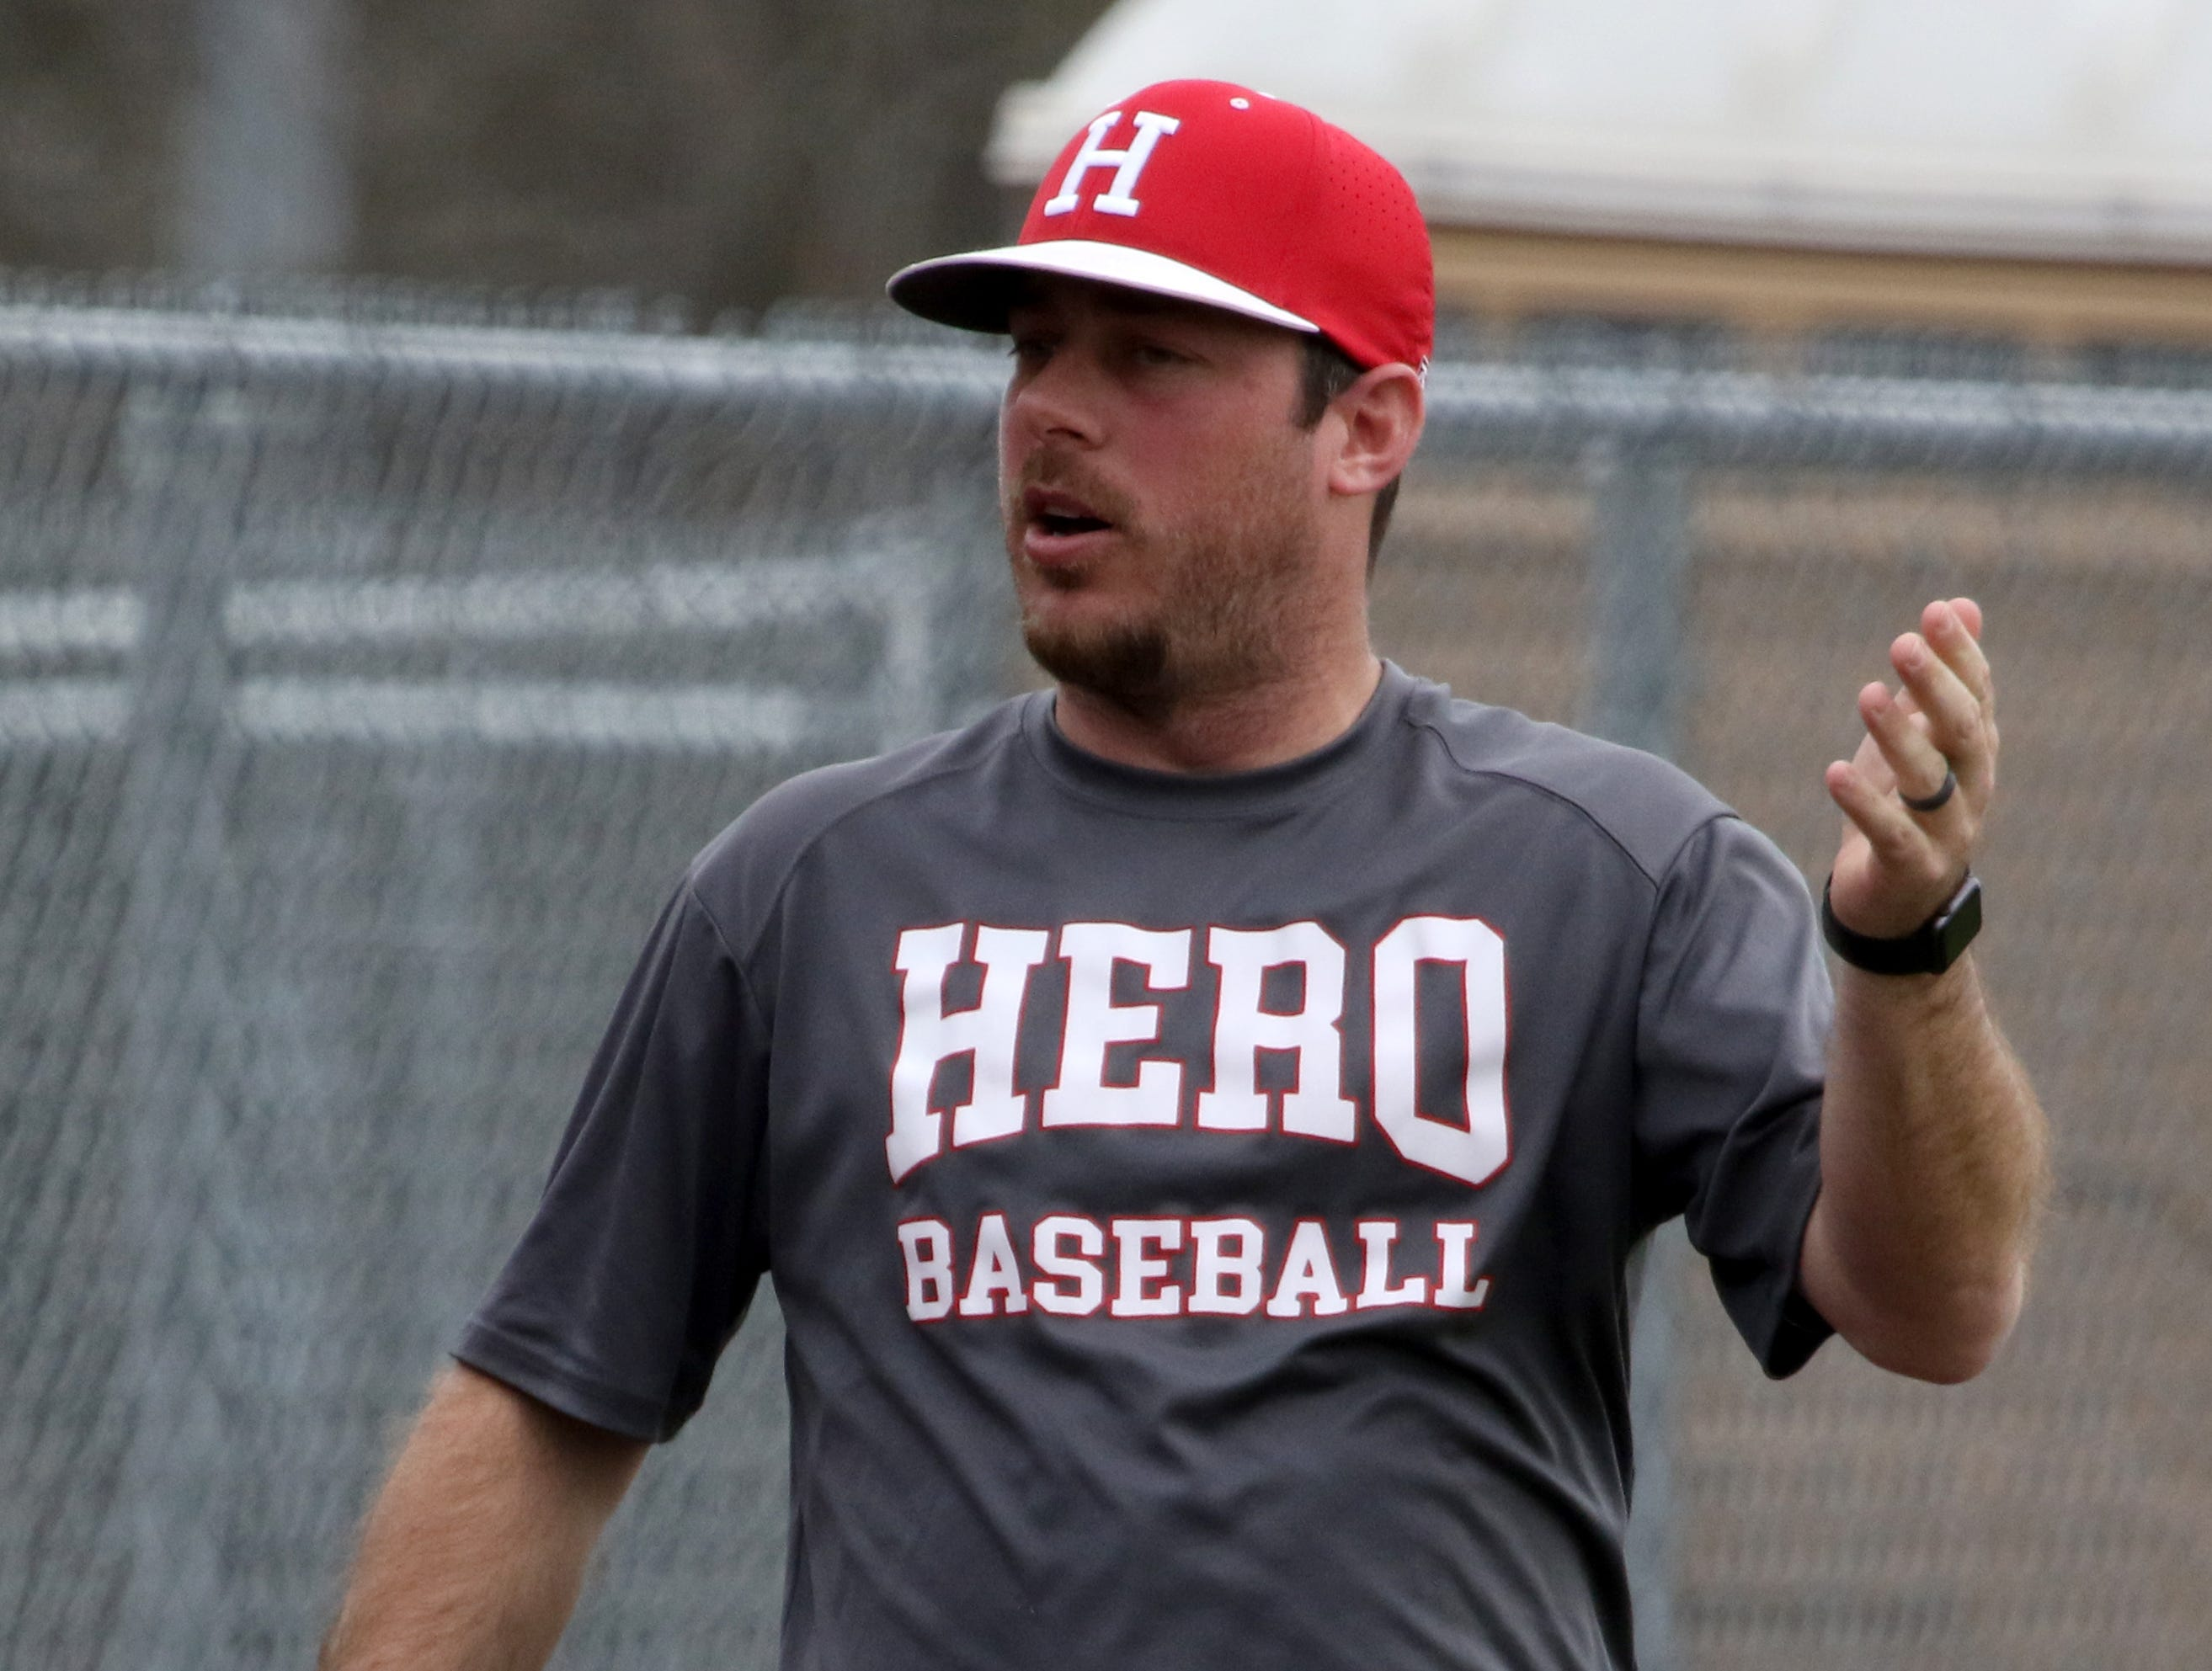 Holliday head baseball coach Brad Blassingame talks to his players in the dugout in the game against Wichita Falls High School Friday, March 8, 2019, in Bowie for the Walker Stallcup Tournament.